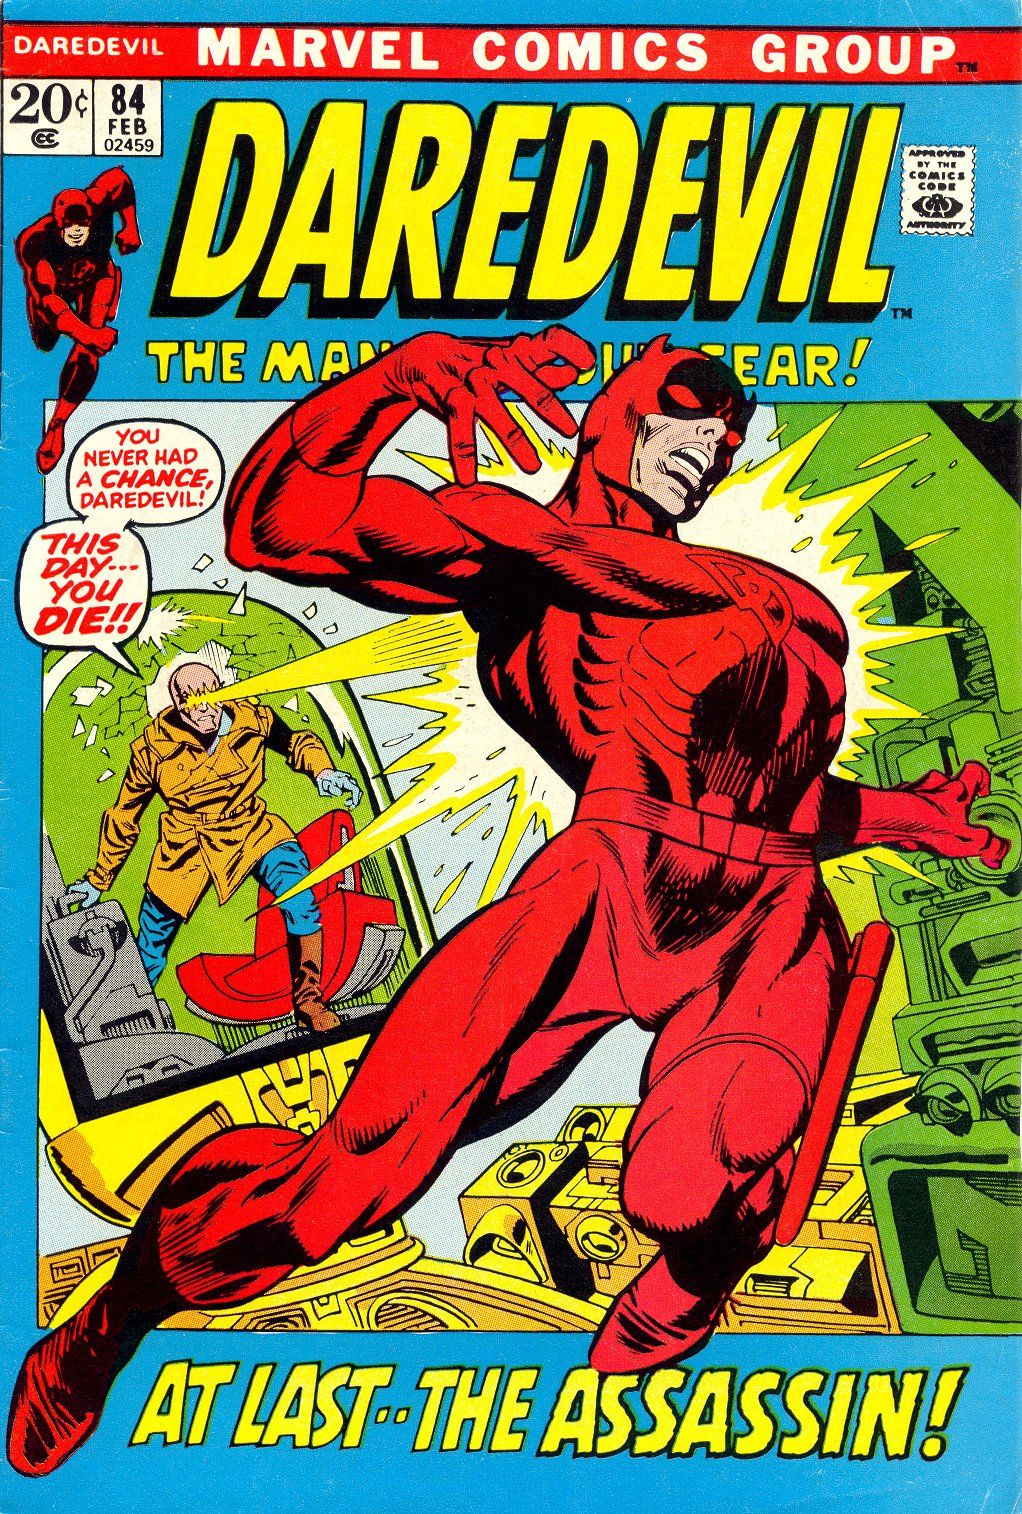 Comic Book Cover Art : Gil kane cover art google search poses costumes and